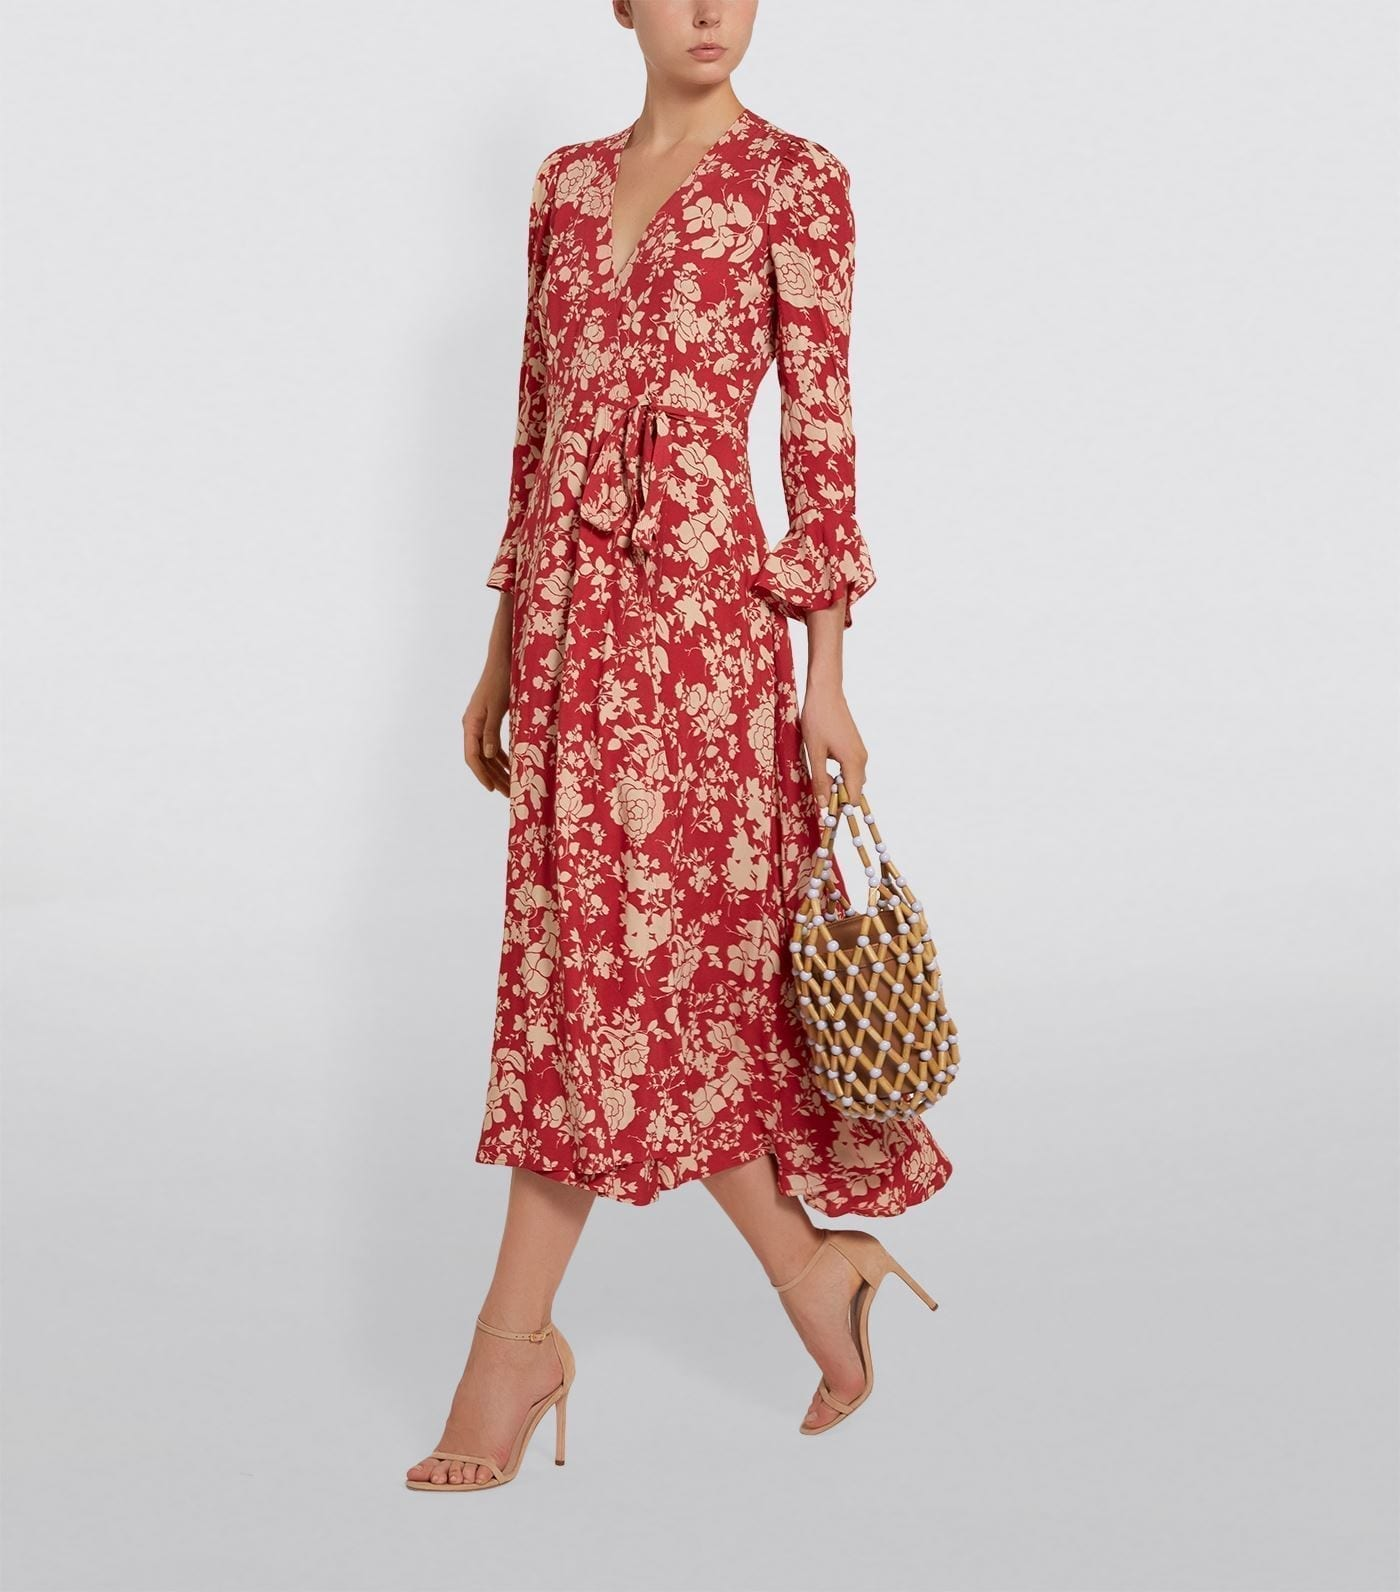 RALPH LAUREN Long Floral Dress